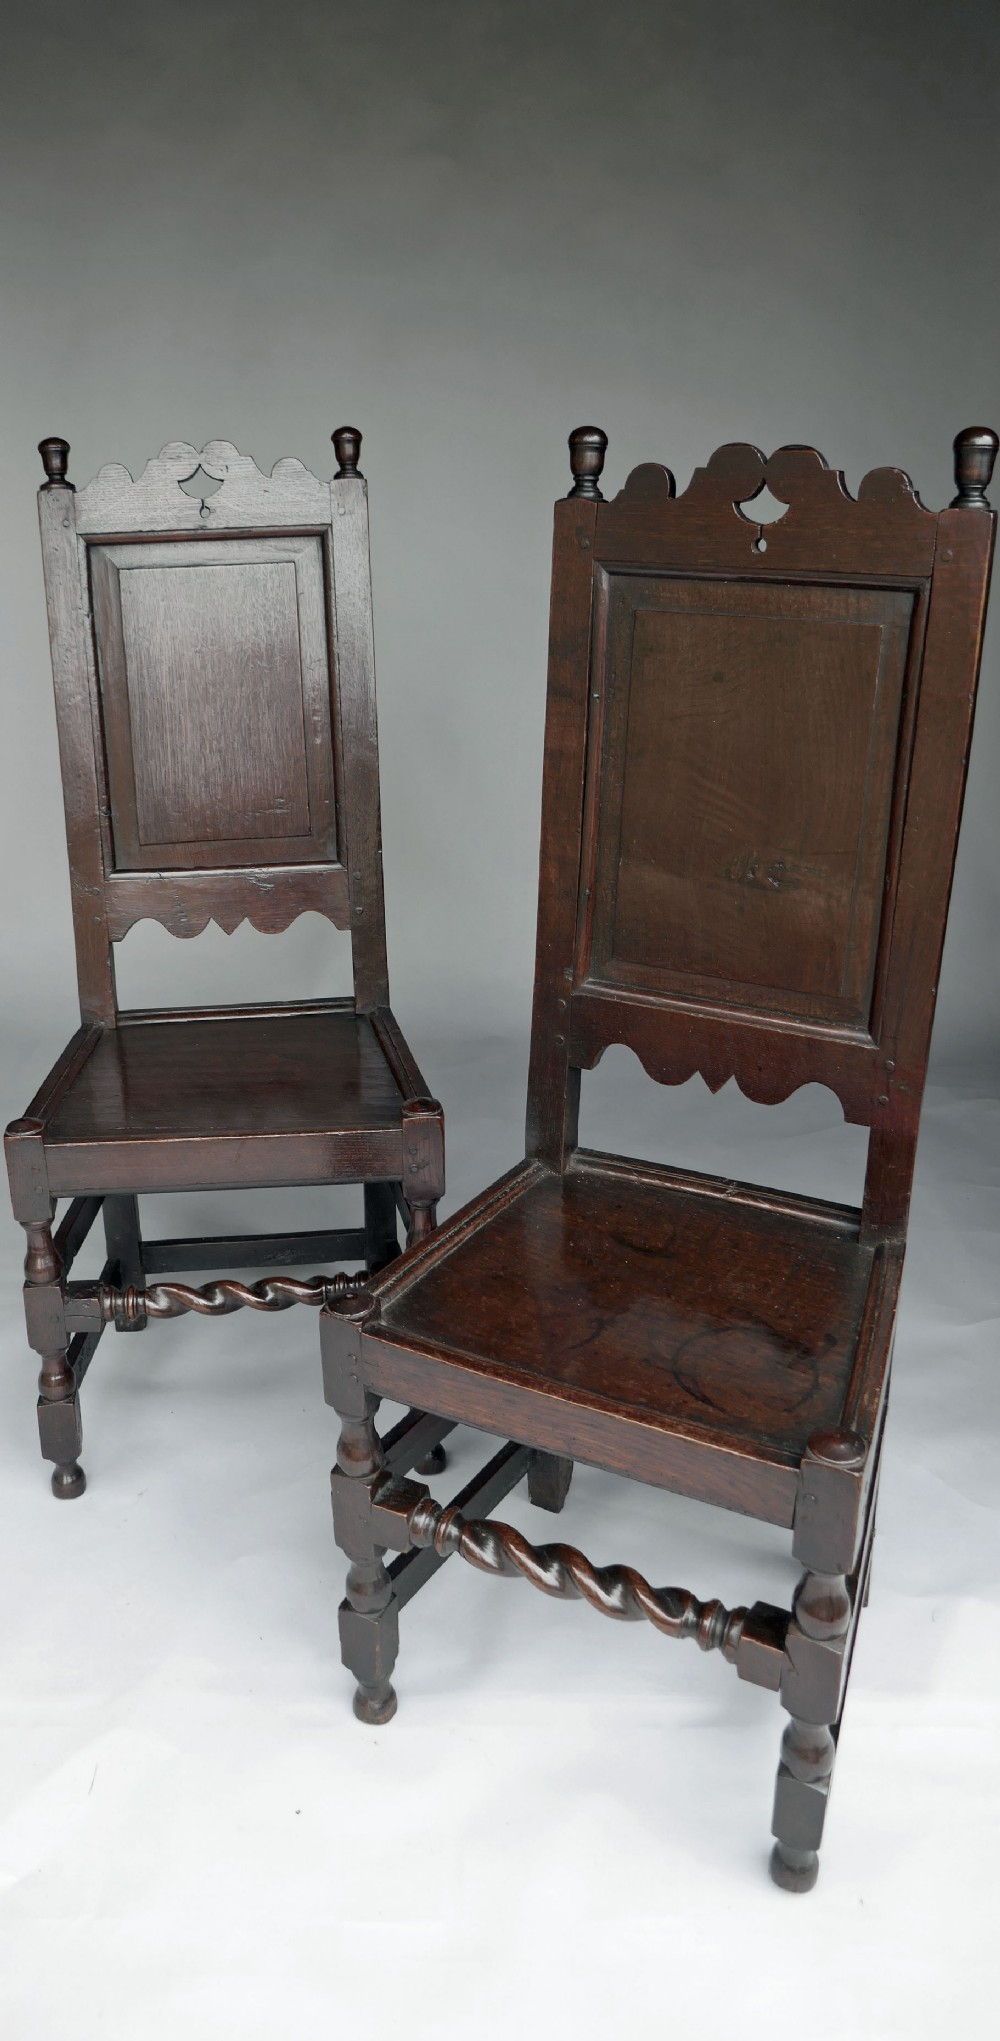 antique oak country furniture 17thc pair of joyned oak side chairs english c168090